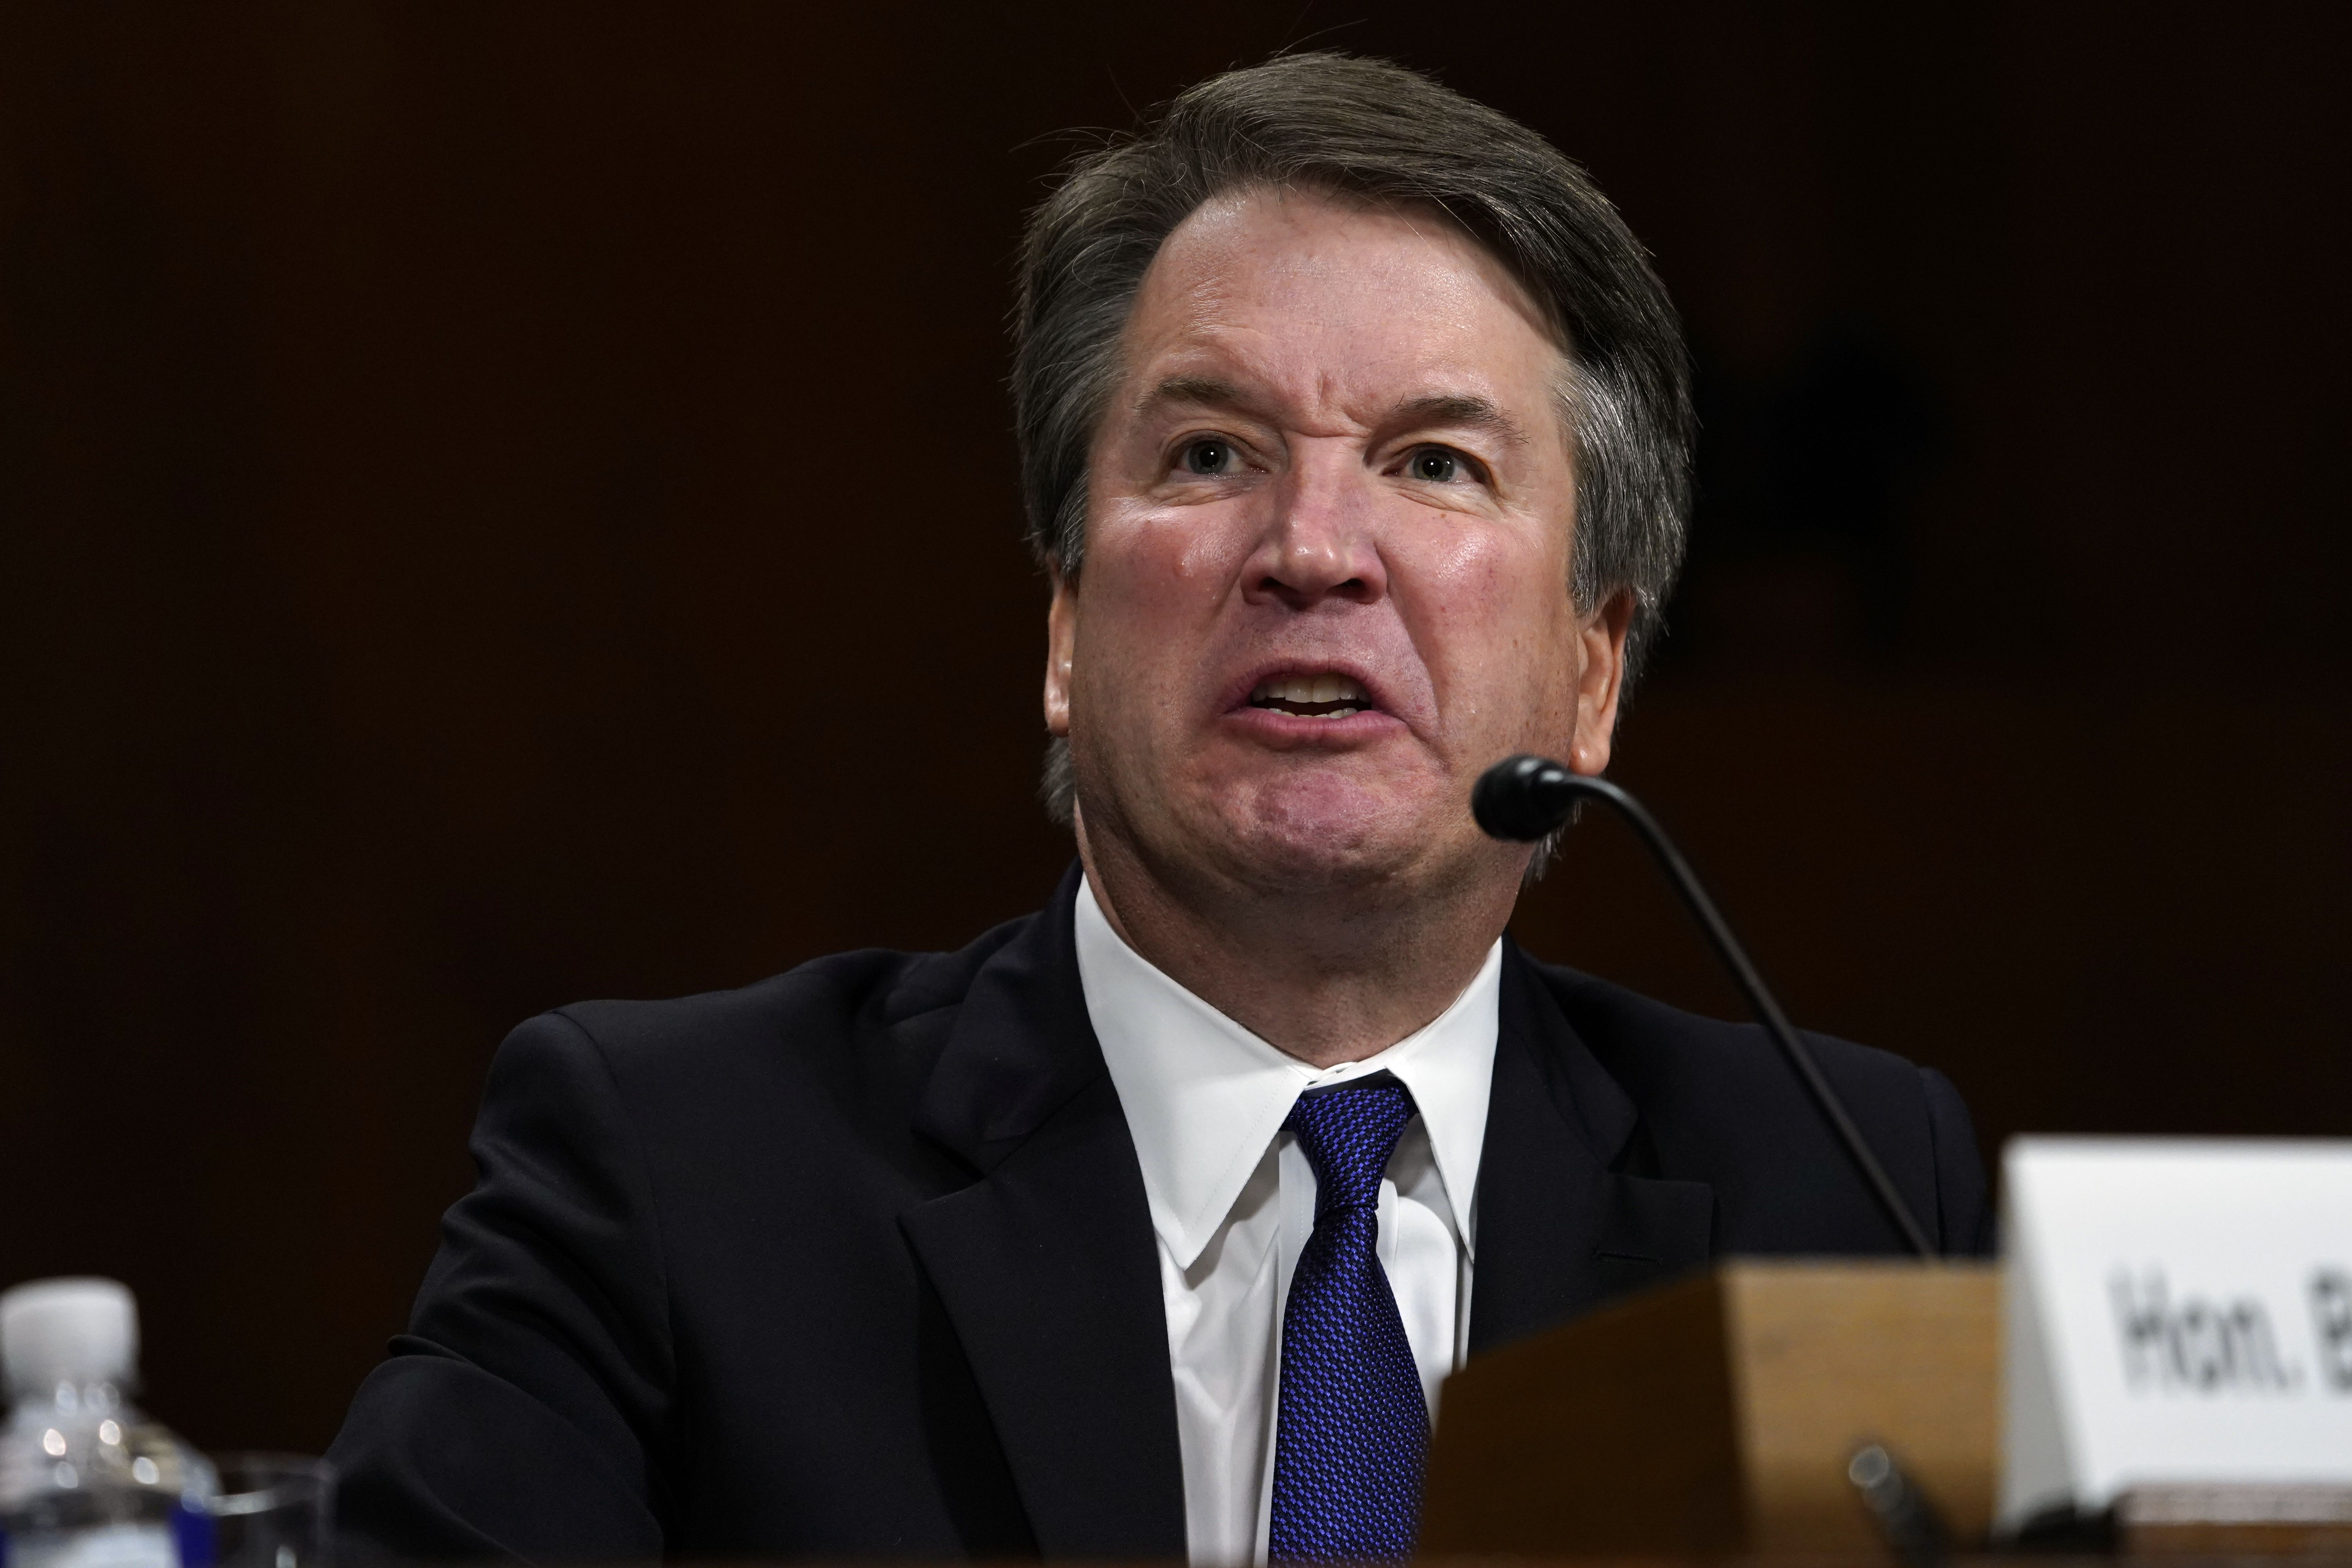 Supreme Court nominee Brett Kavanaugh testifies before the Senate Judiciary Committee on Thursday. Photo: Andrew Harnik - Pool/Getty Images